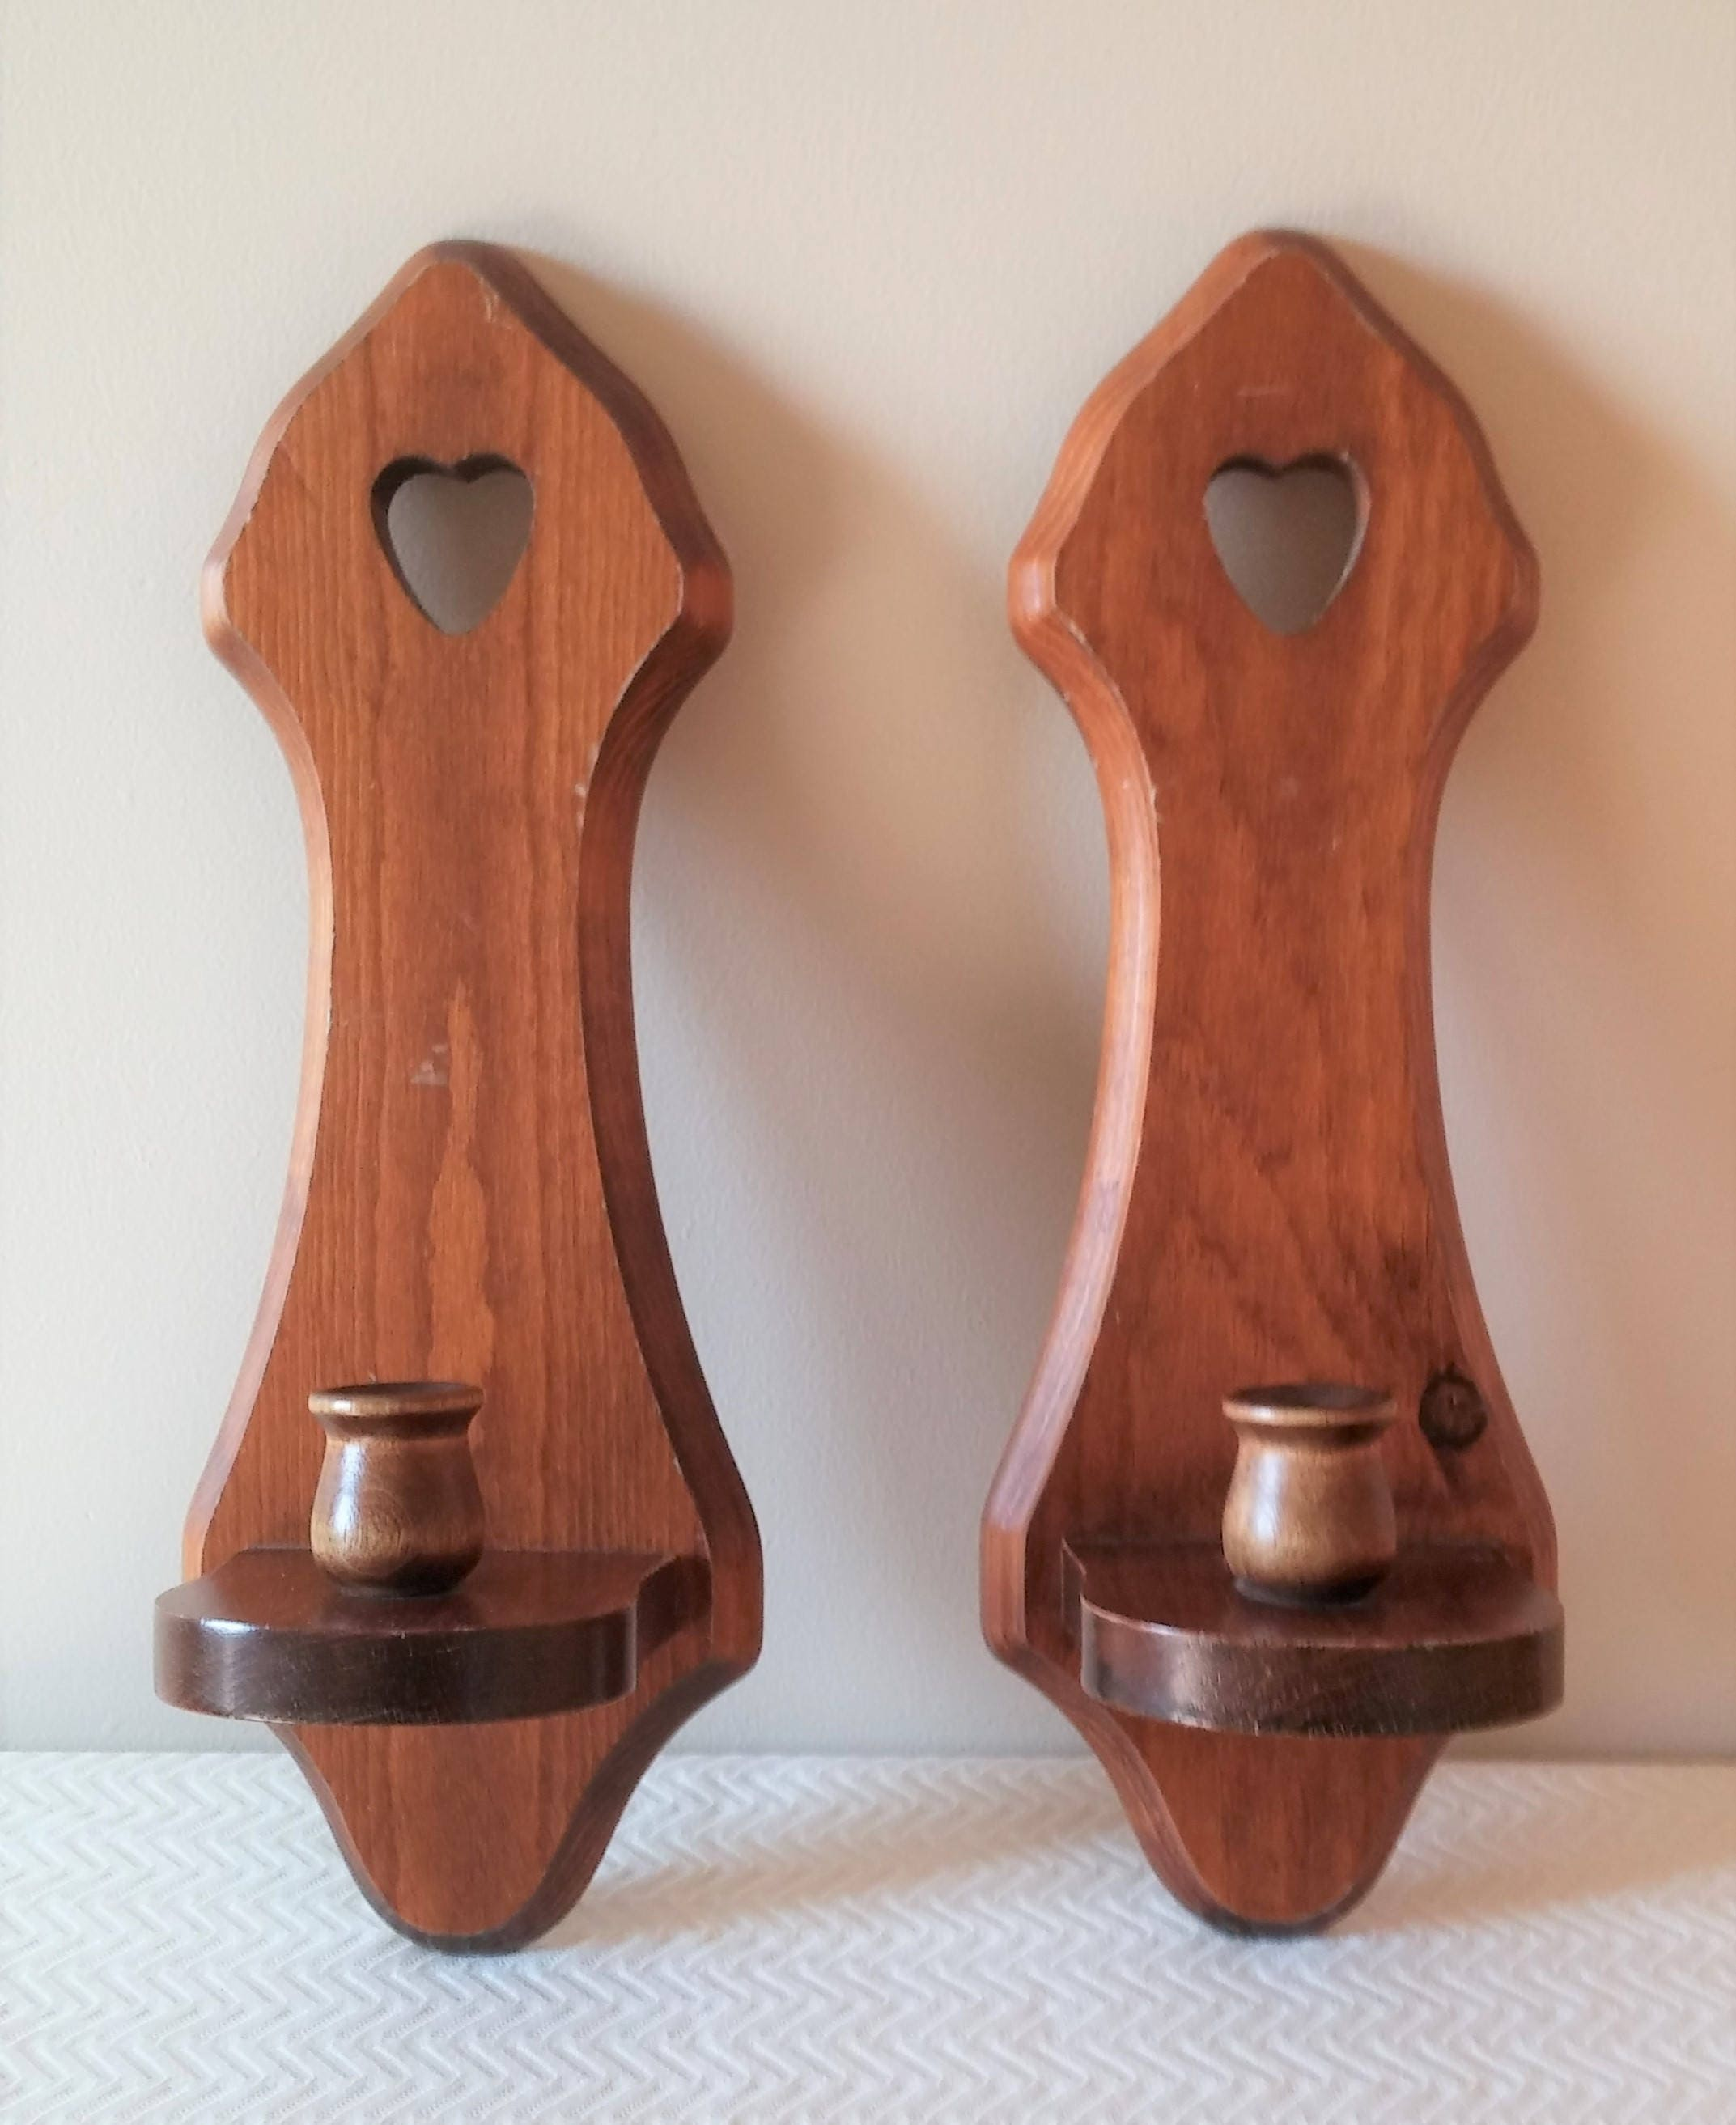 Pair of Vintage Wood Wall Candle Sconces Vintage Sconces Wall